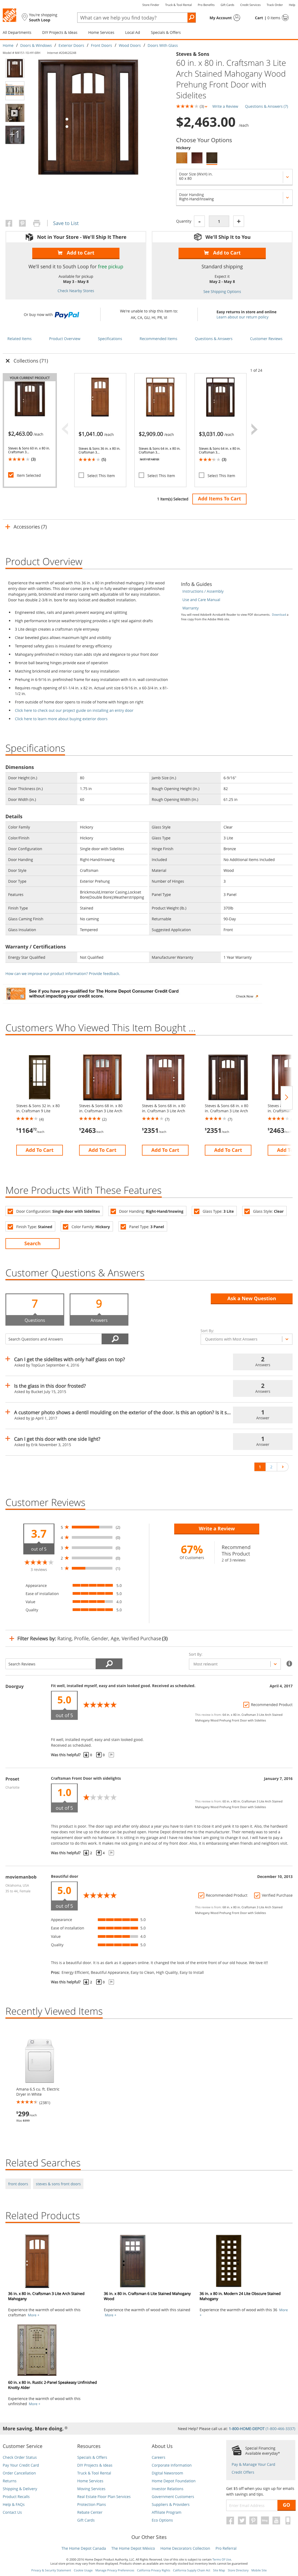 Home Depots Product Page Usability Benchmark Score